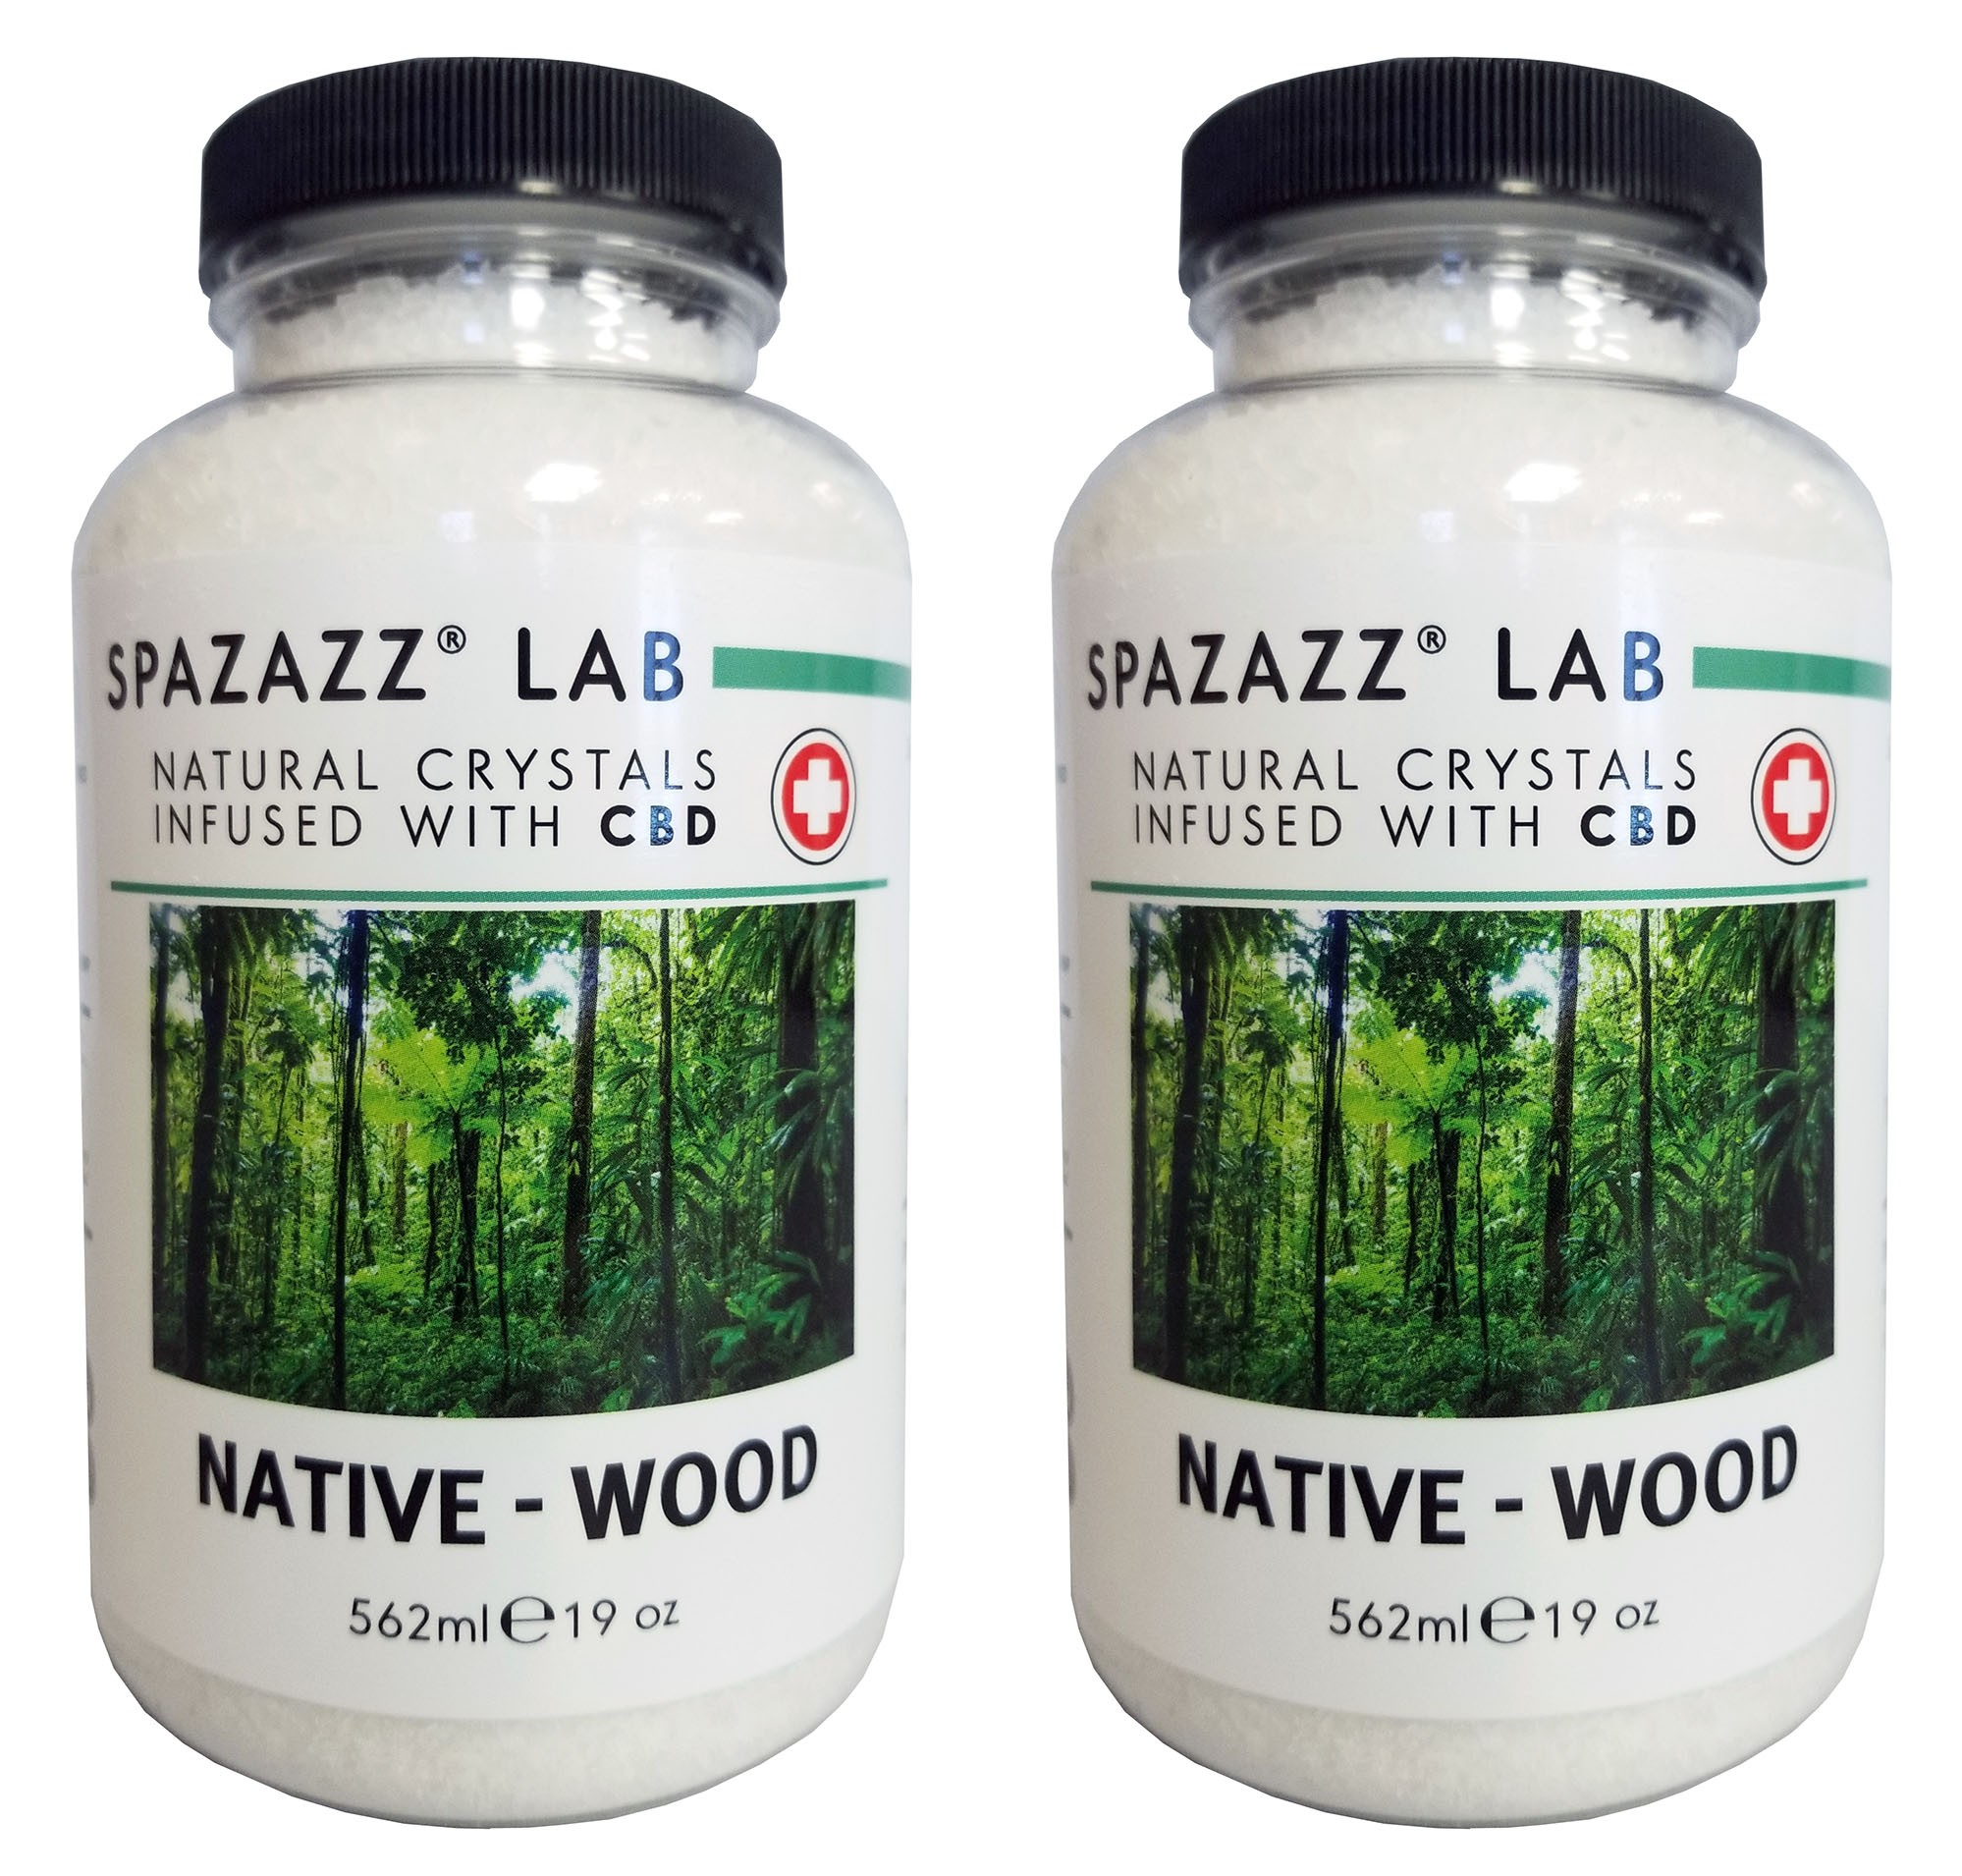 Spazazz Aromatherapy Spa & Bath Crystals Infused with CBD - Native Wood 19oz 2PK